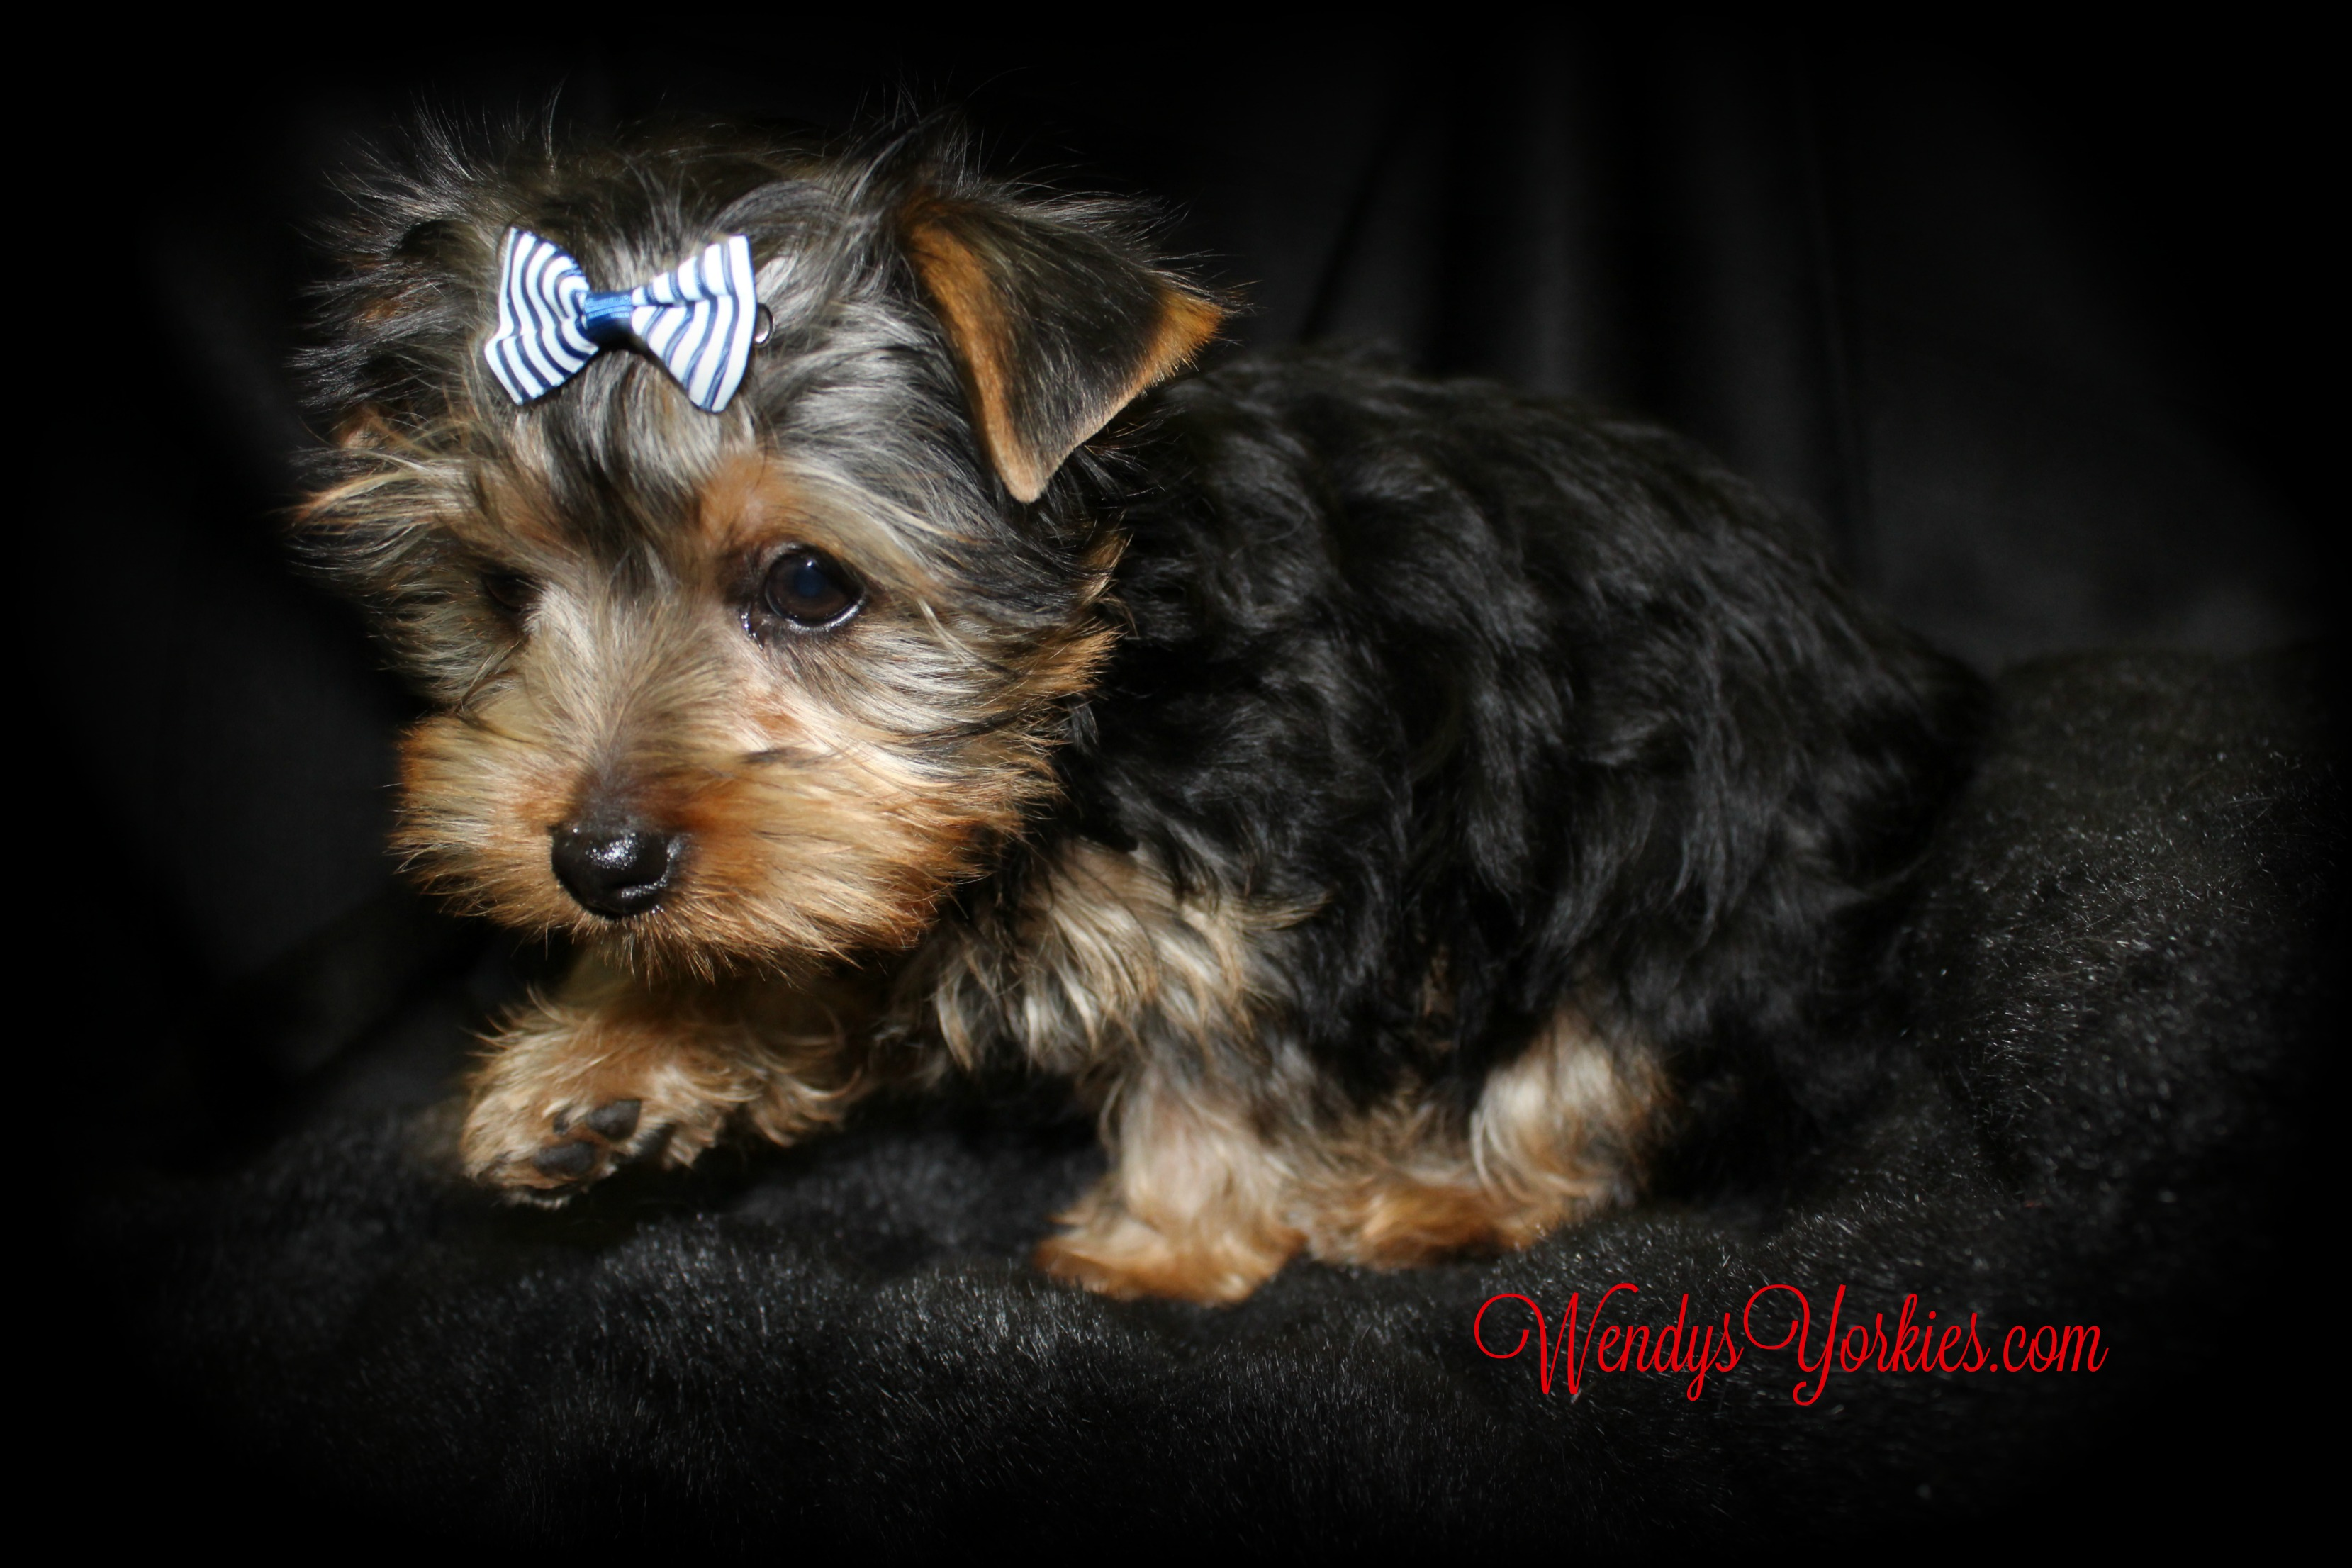 Teacup Yorkie puppy for sale, Jax, WendysYorkies.com